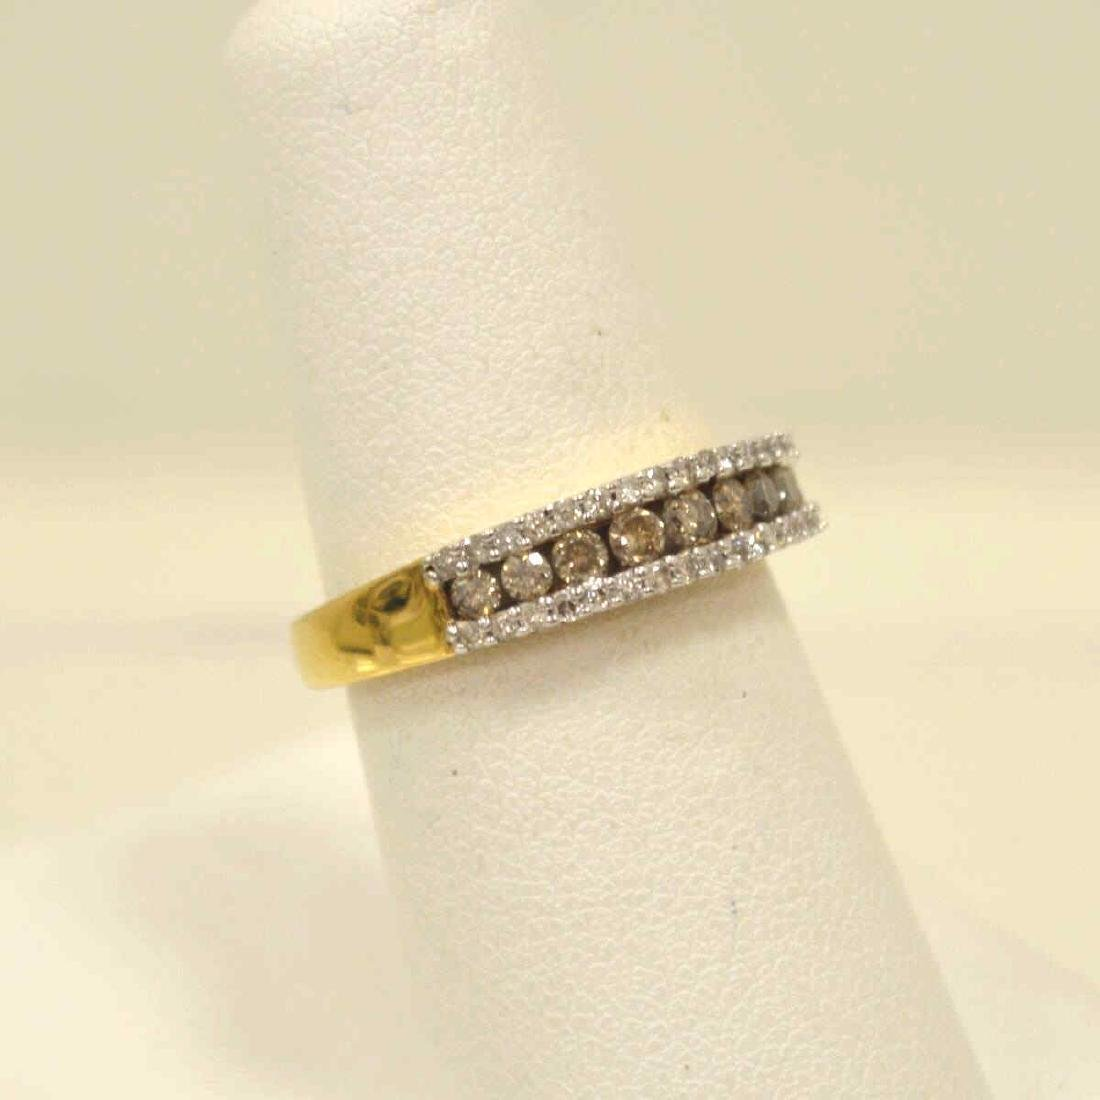 10kt yellow gold diamond fashion band - 2